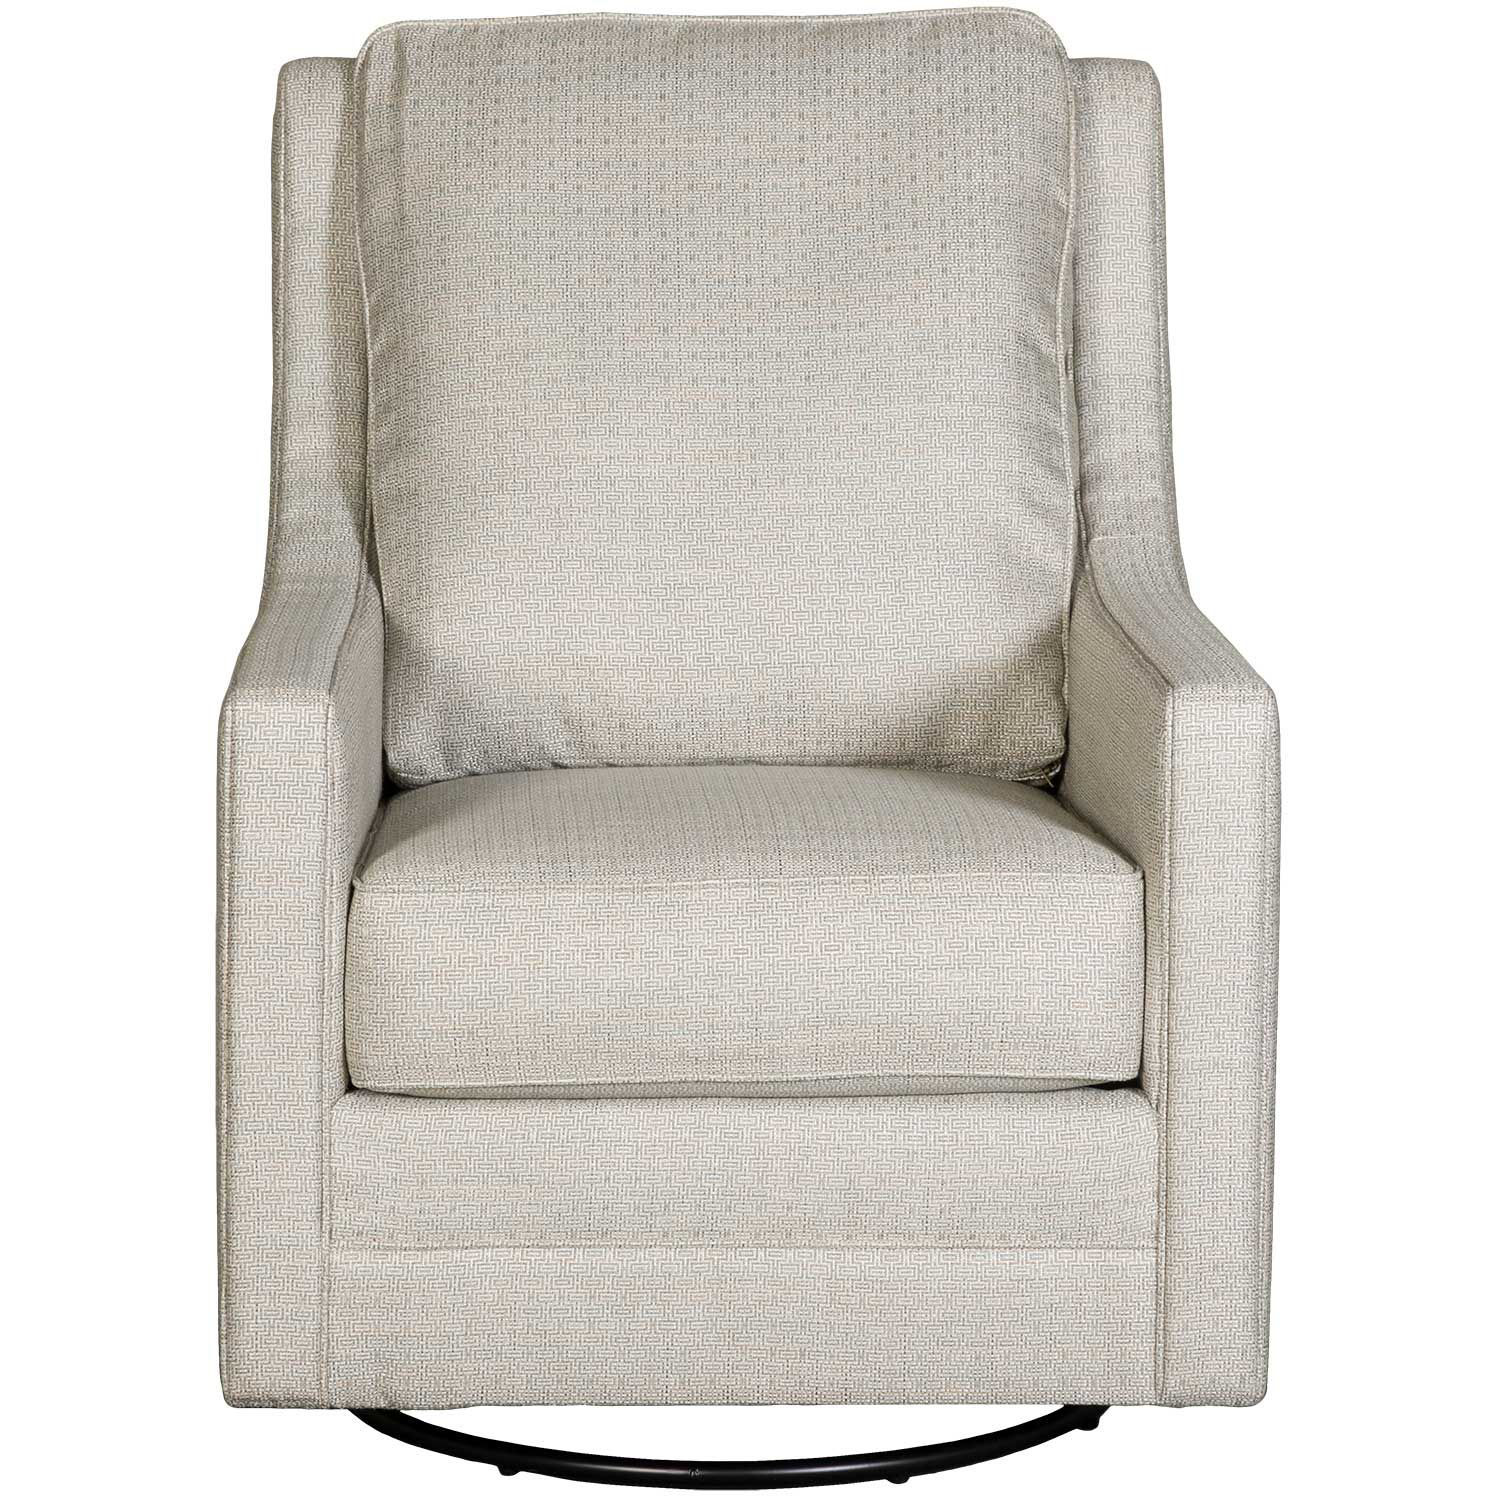 Picture of Claredon Linen Swivel Glider Chair